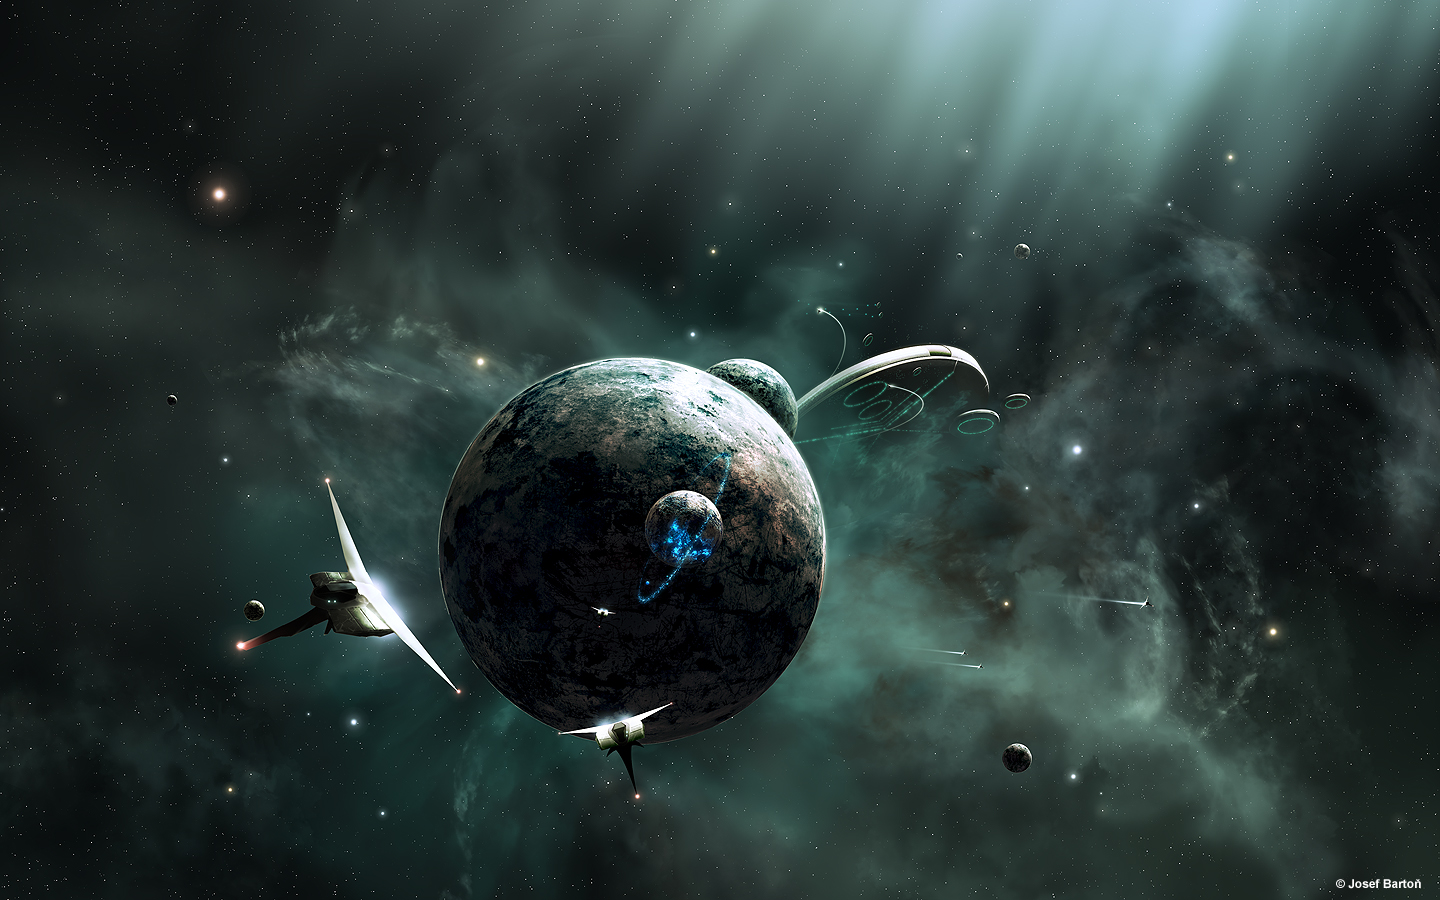 Space Fantasy Wallpaper Set 88 Awesome Wallpapers